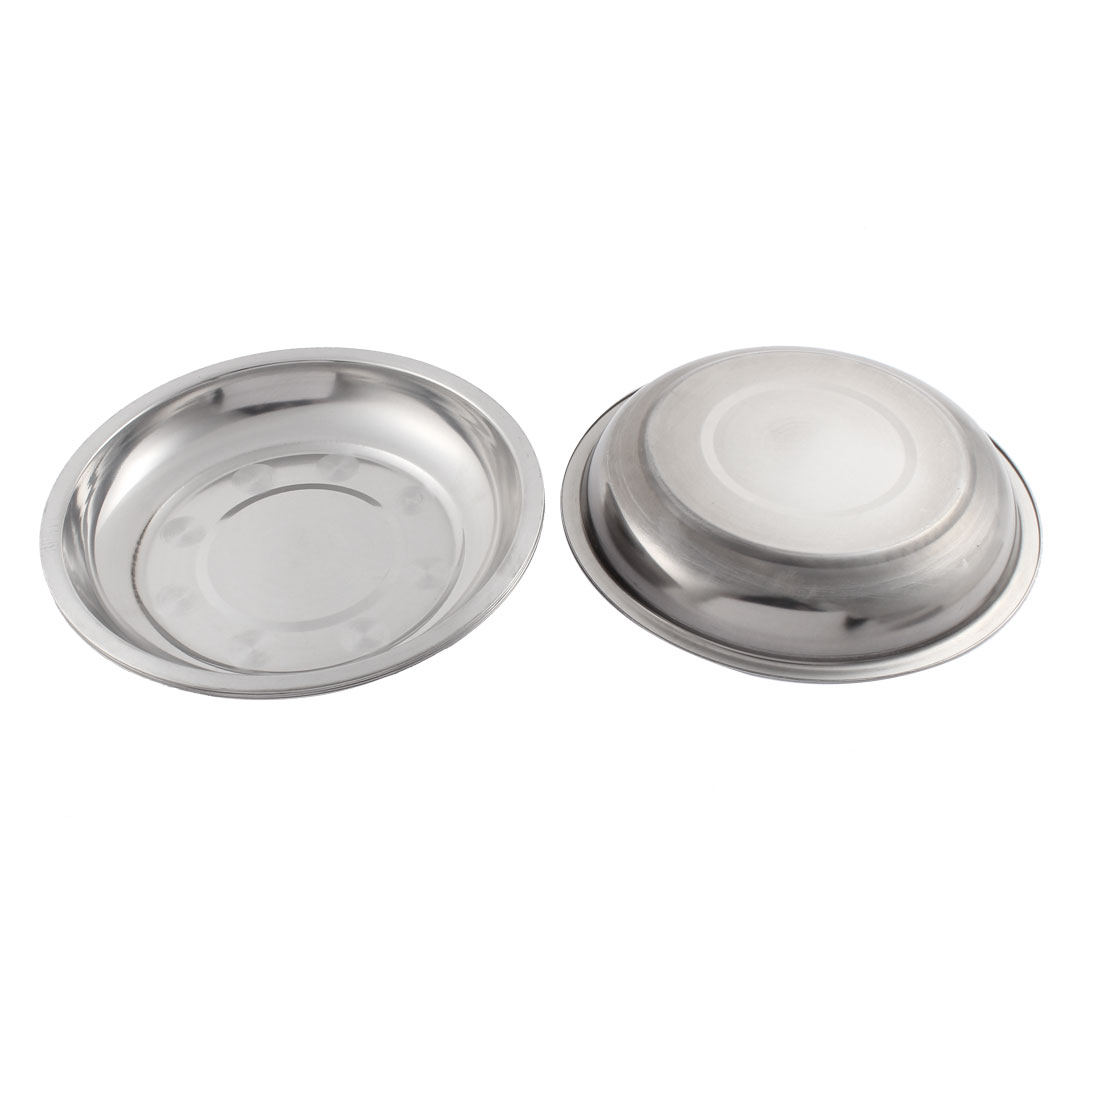 19cm x 3cm Round Silver Tone Stainless Steel Dinner Vegetables Plate Holder 5 Pcs